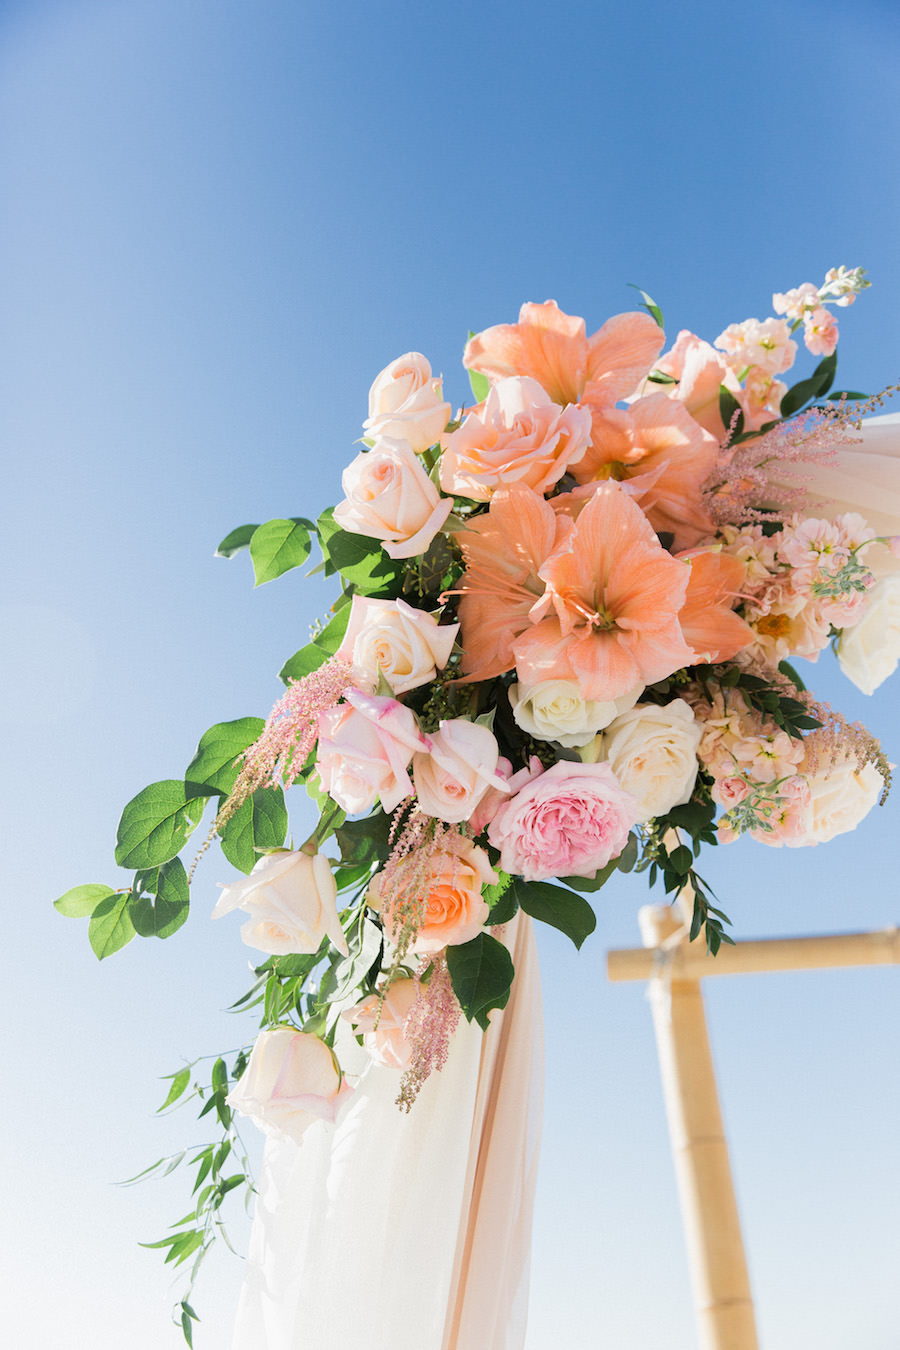 Peach, blush, ivory and green wedding ceremony florals on Bamboo Altar | Florida Clearwater beach wedding Decor Ideas and Inspiration